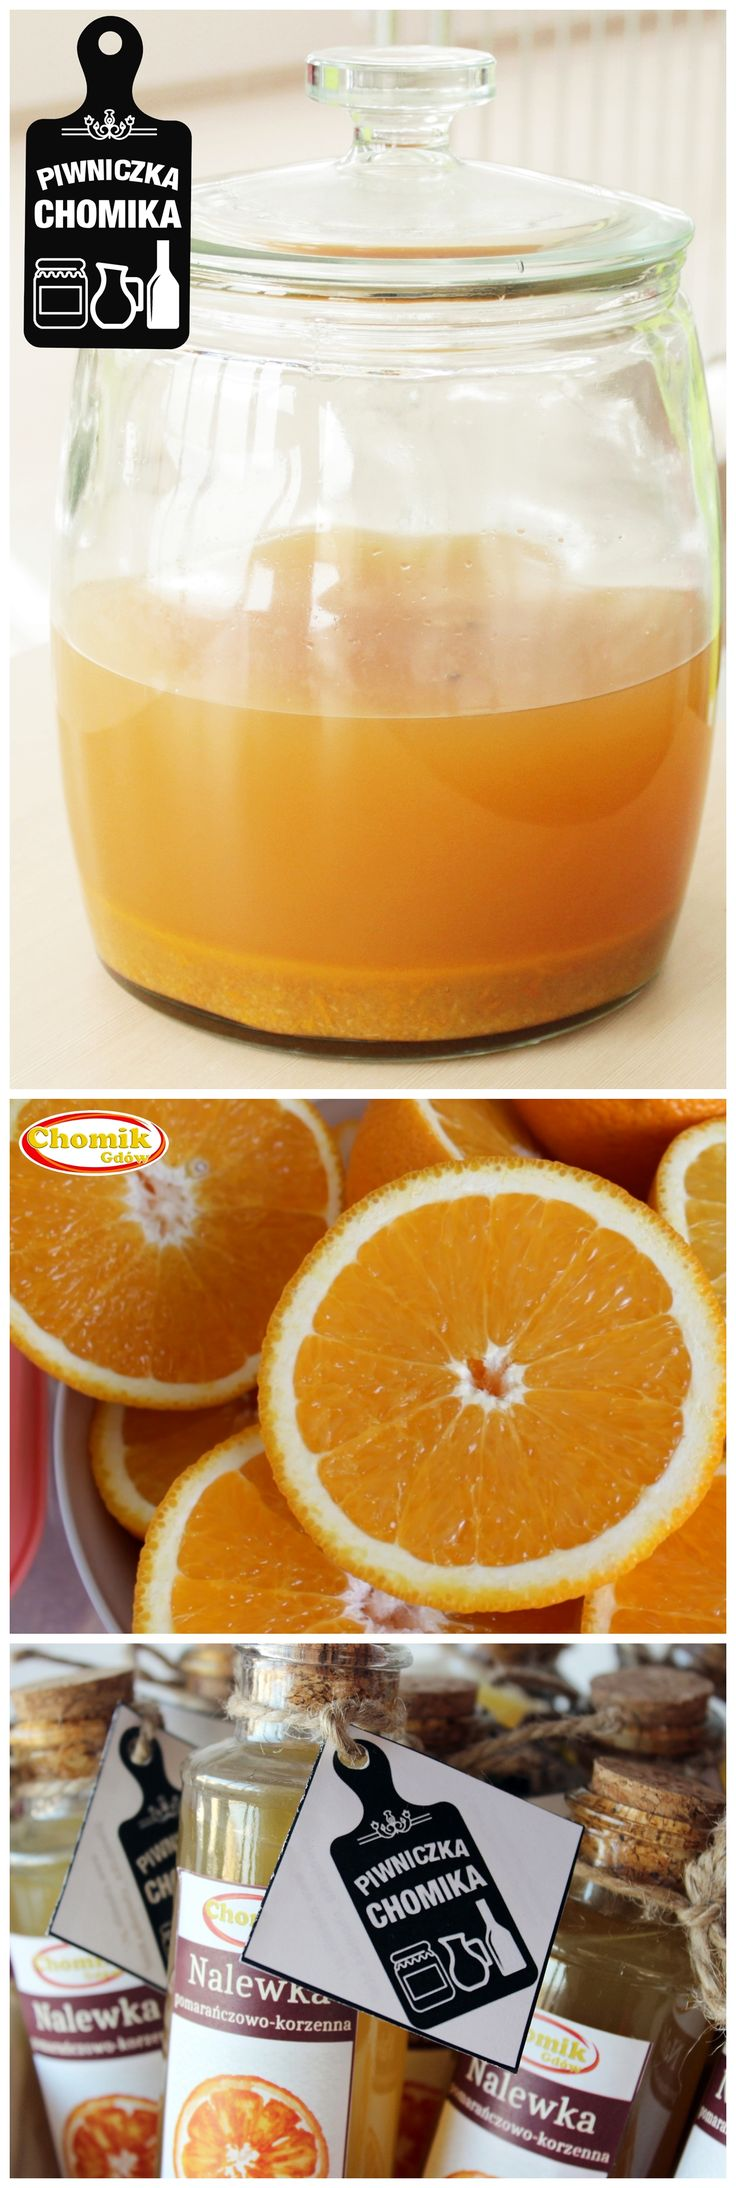 Orange cordial with spice